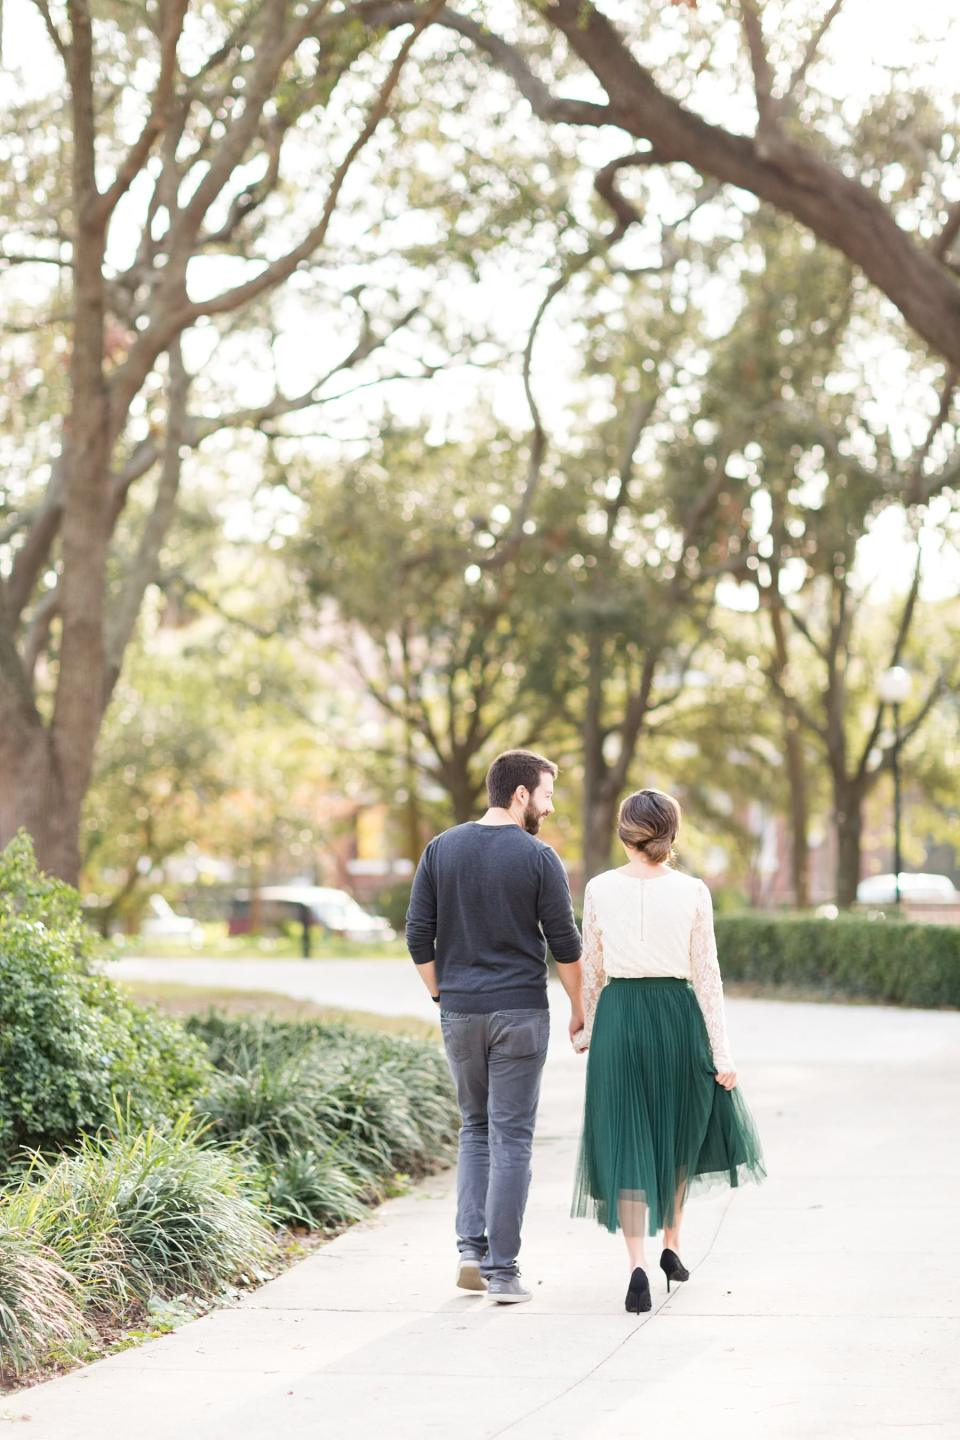 Downtown Jacksonville and Memorial Park Engagement | Jacksonville Wedding Photographers | www.bricibene.com